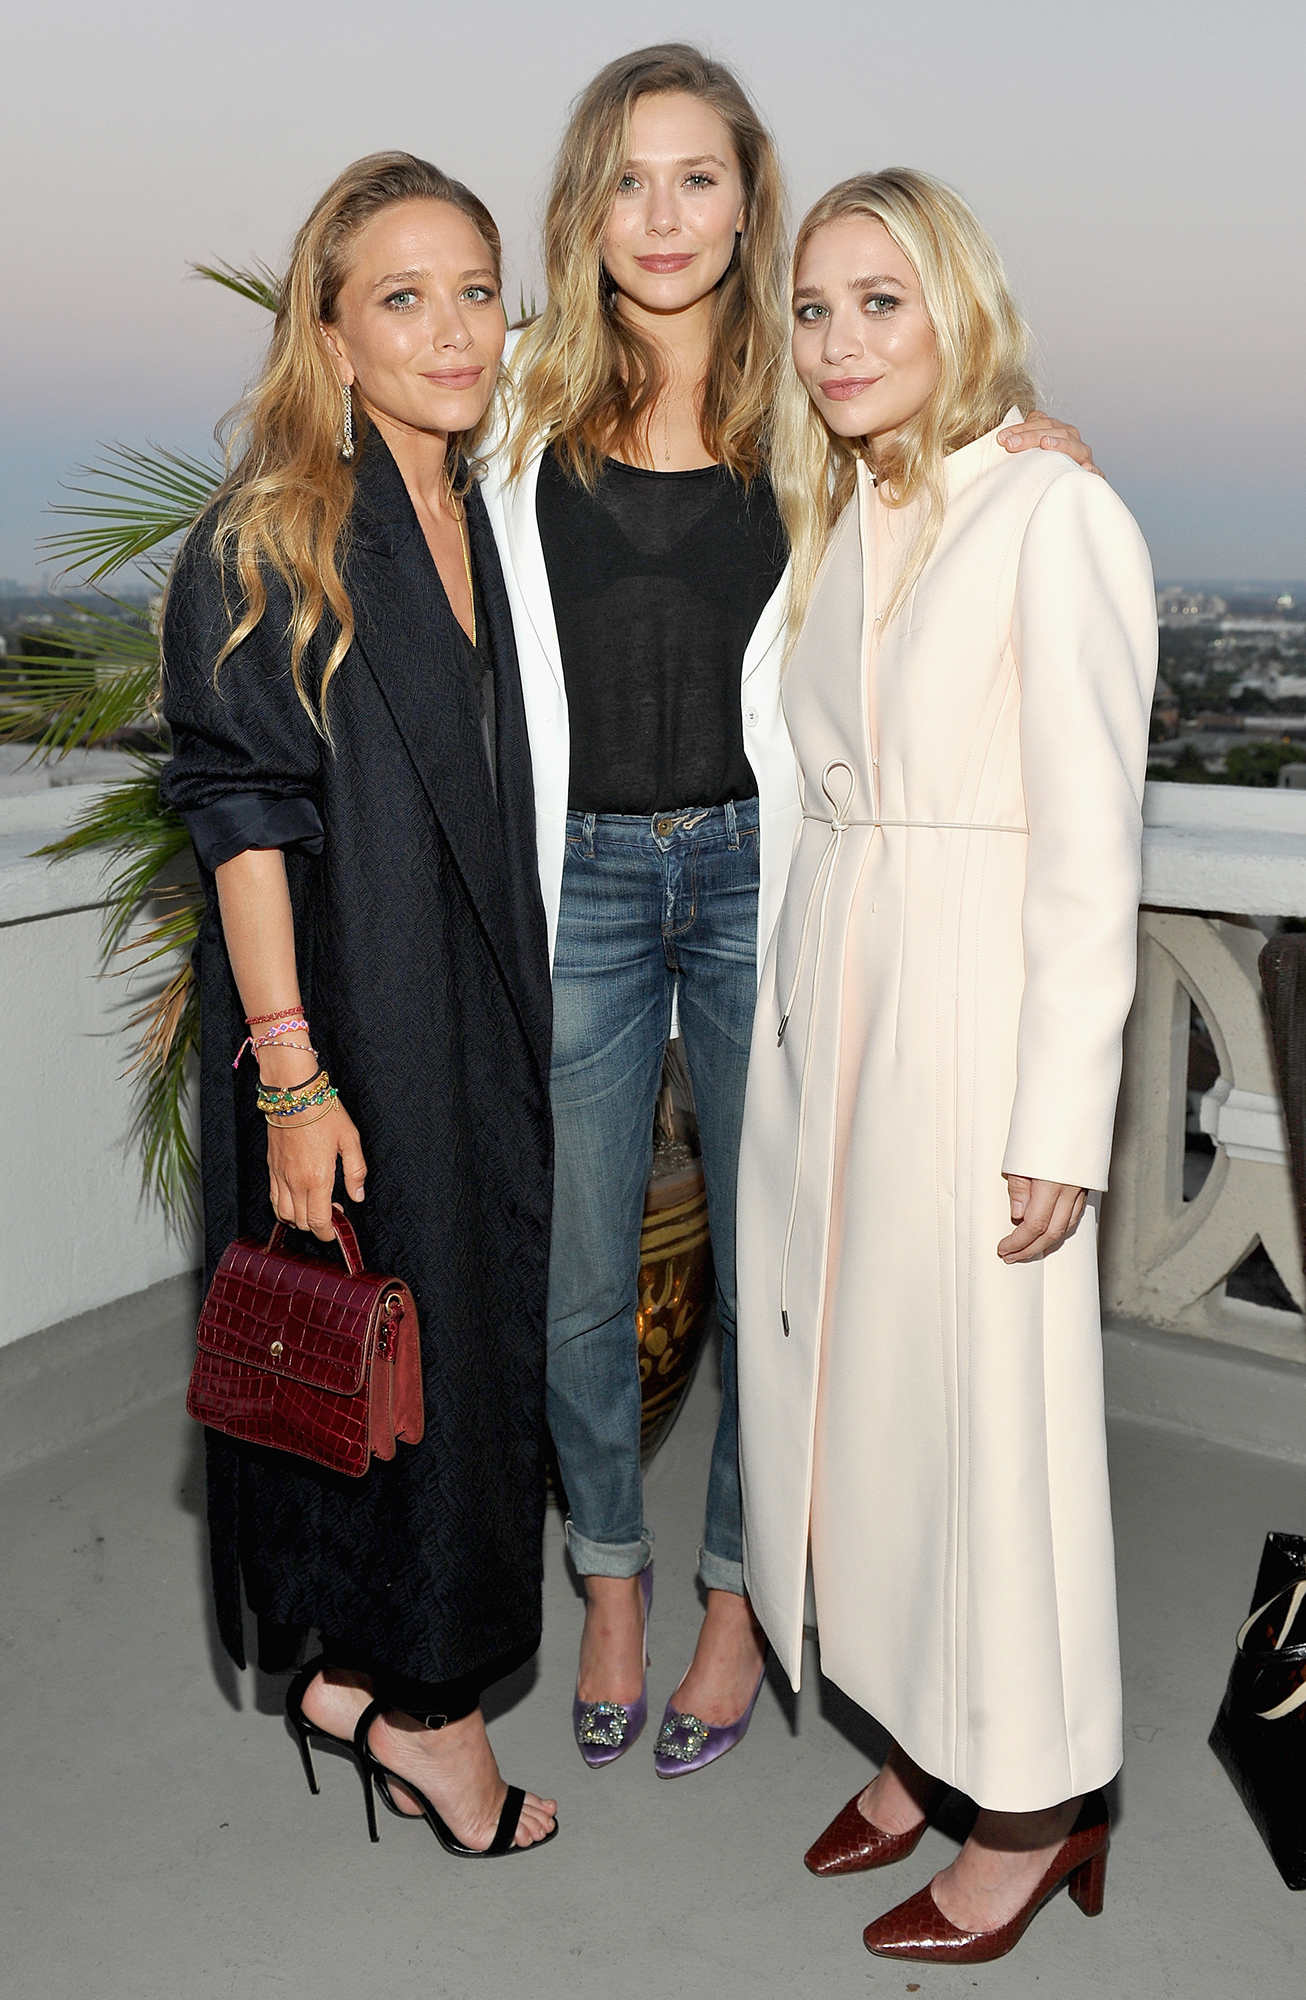 Celebrity Siblings - Rising to fame in 1987 while sharing the role of Michelle Tanner on Full House , twins Mary-Kate and Ashley —whose younger sister Elizabeth Olsen is also an actress — built their own movie empire with Dualstar productions once Full House wrapped in 1995. The elder Olsens have since gone on to launch their own hugely successful clothing lines, The Row, Elizabeth & James and Olsenboye, all the while guiding their younger sis.